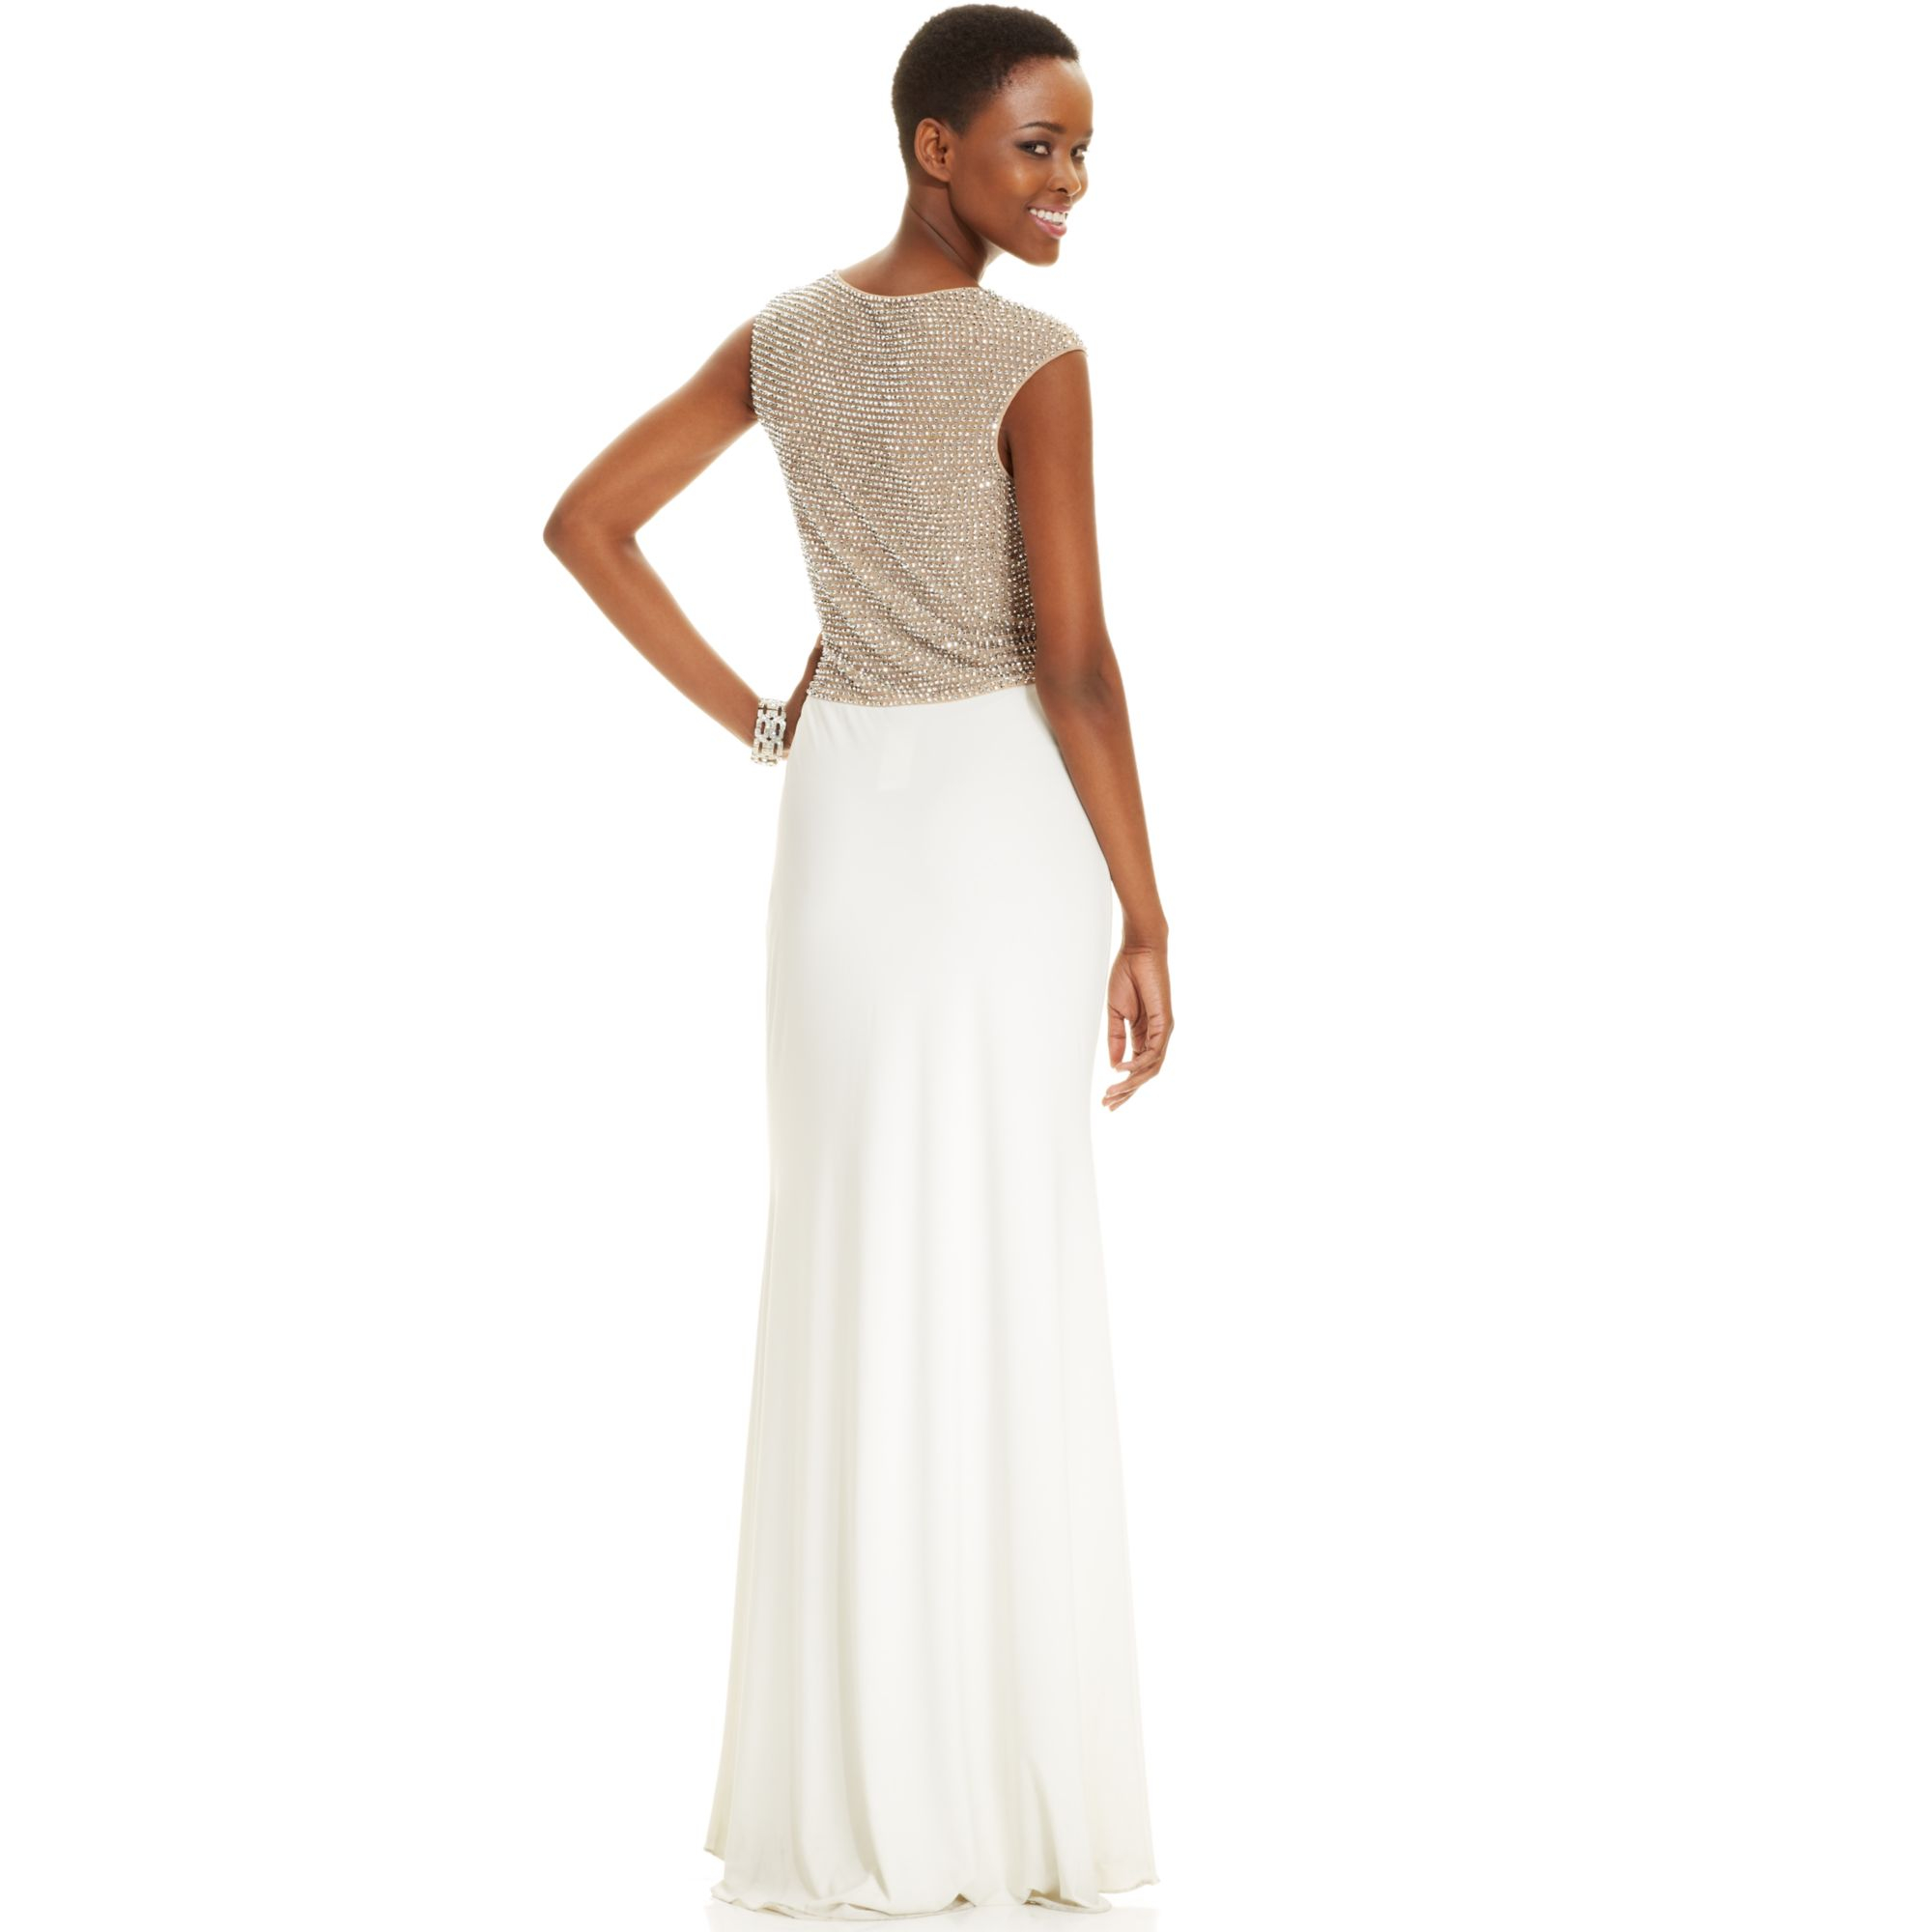 Lyst - Xscape Capsleeve Jewelback Gown in White